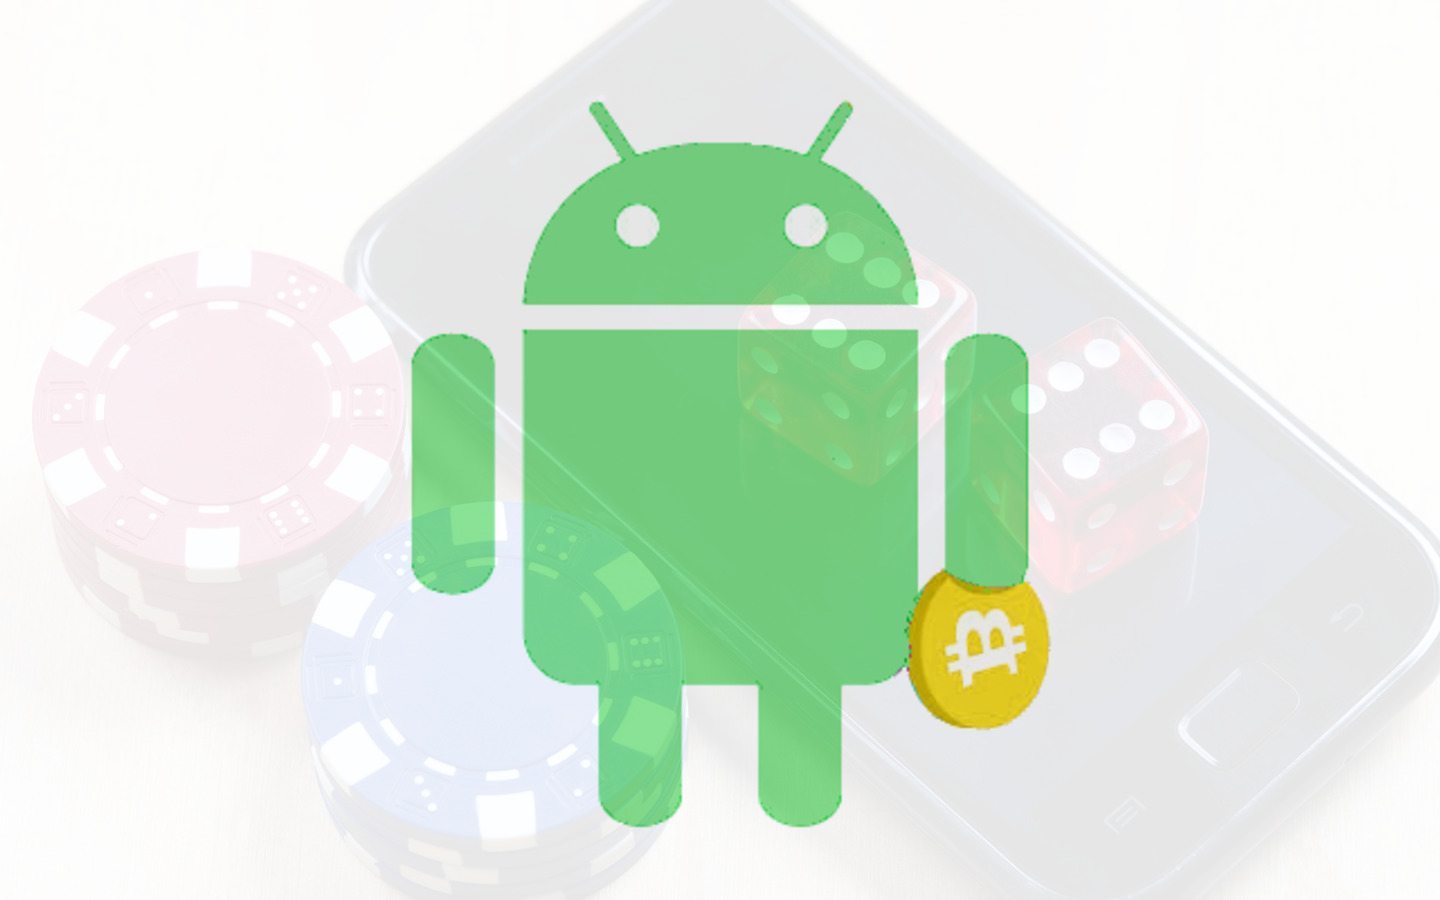 android bitcoin casinos for high rollers